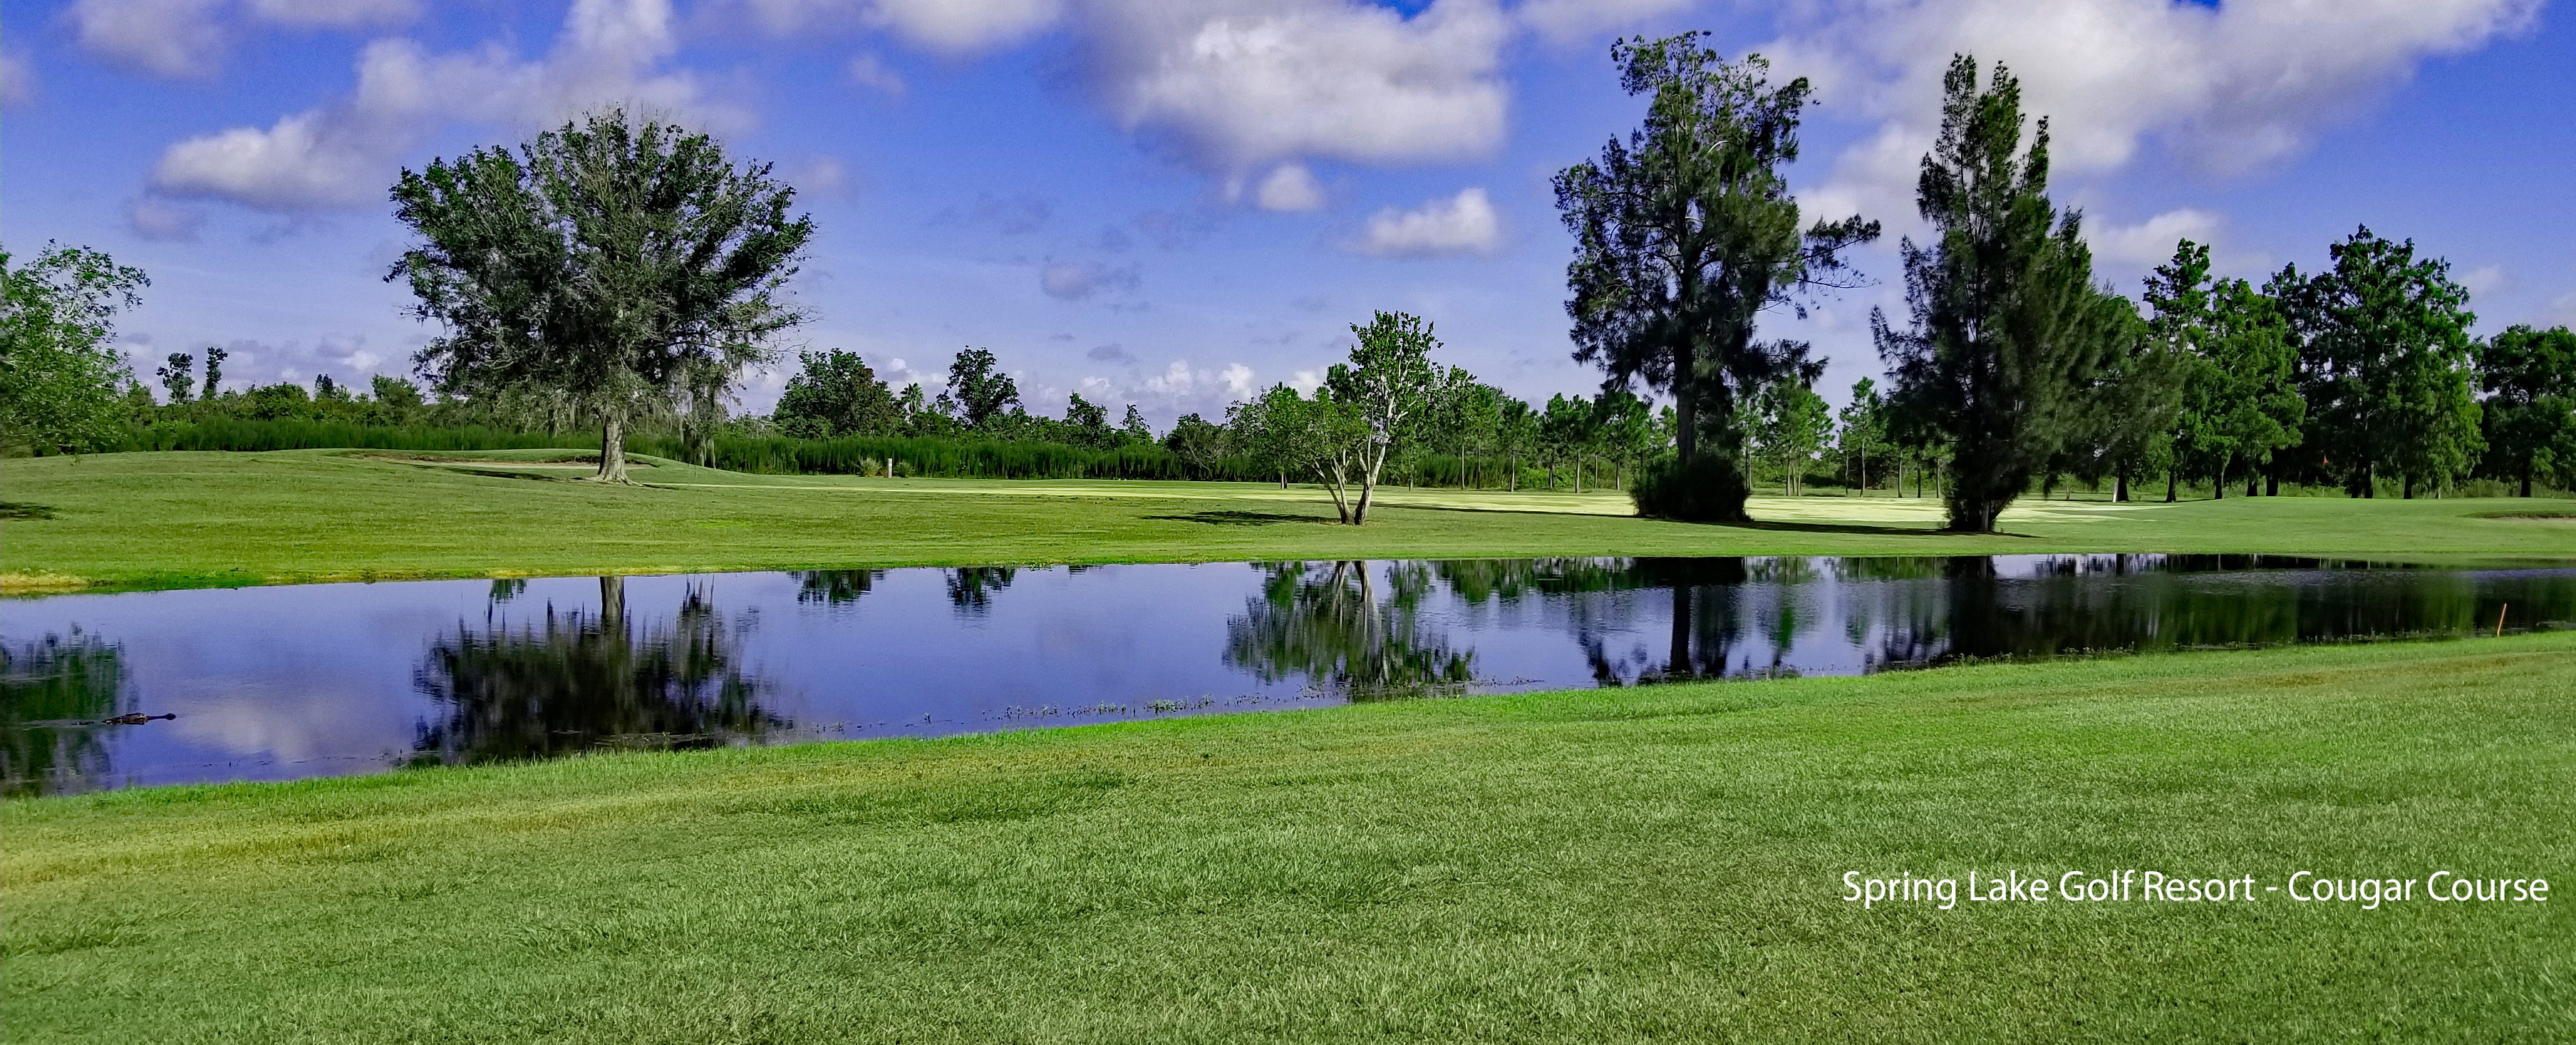 Spring Lake Golf Resort